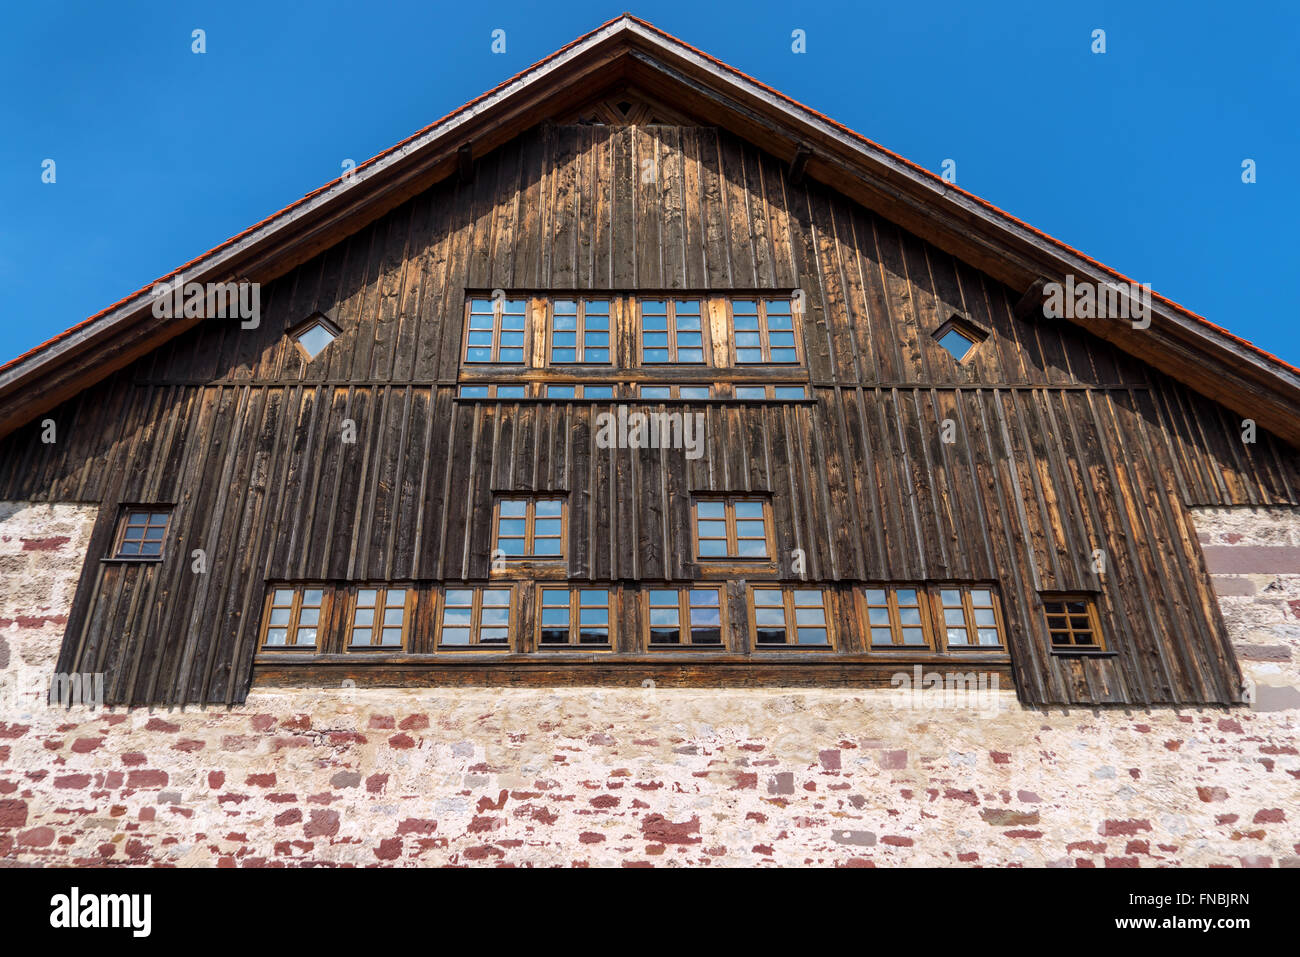 Gable of a rustic house with a dark brown wooden facade above a foundation wall made of red natural stone - Stock Image